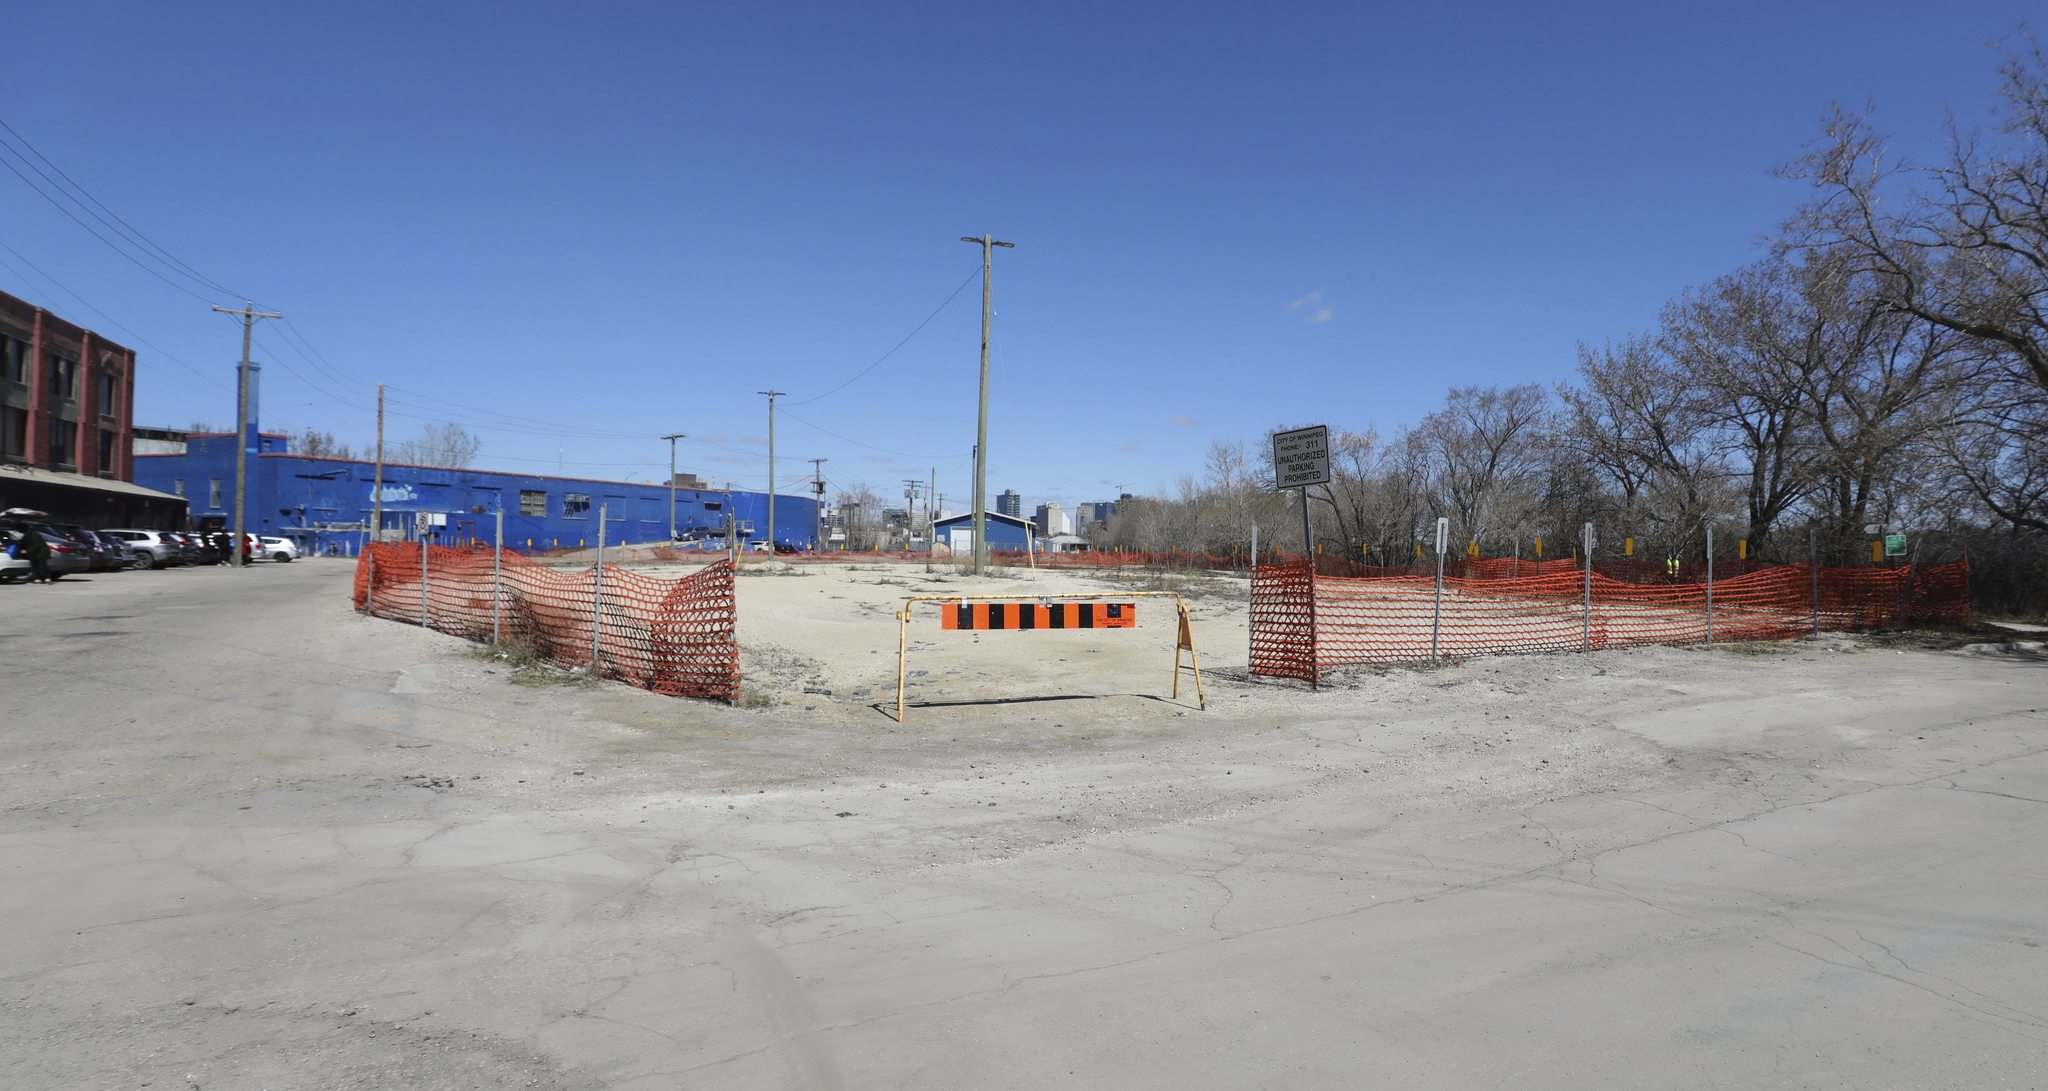 On Thursday evening, council cast a 14-2 final vote to reject the sale of civic property at 409 Mulvey Ave. E., in close proximity to the Red River, instead of selling it to allow a new development.</p>